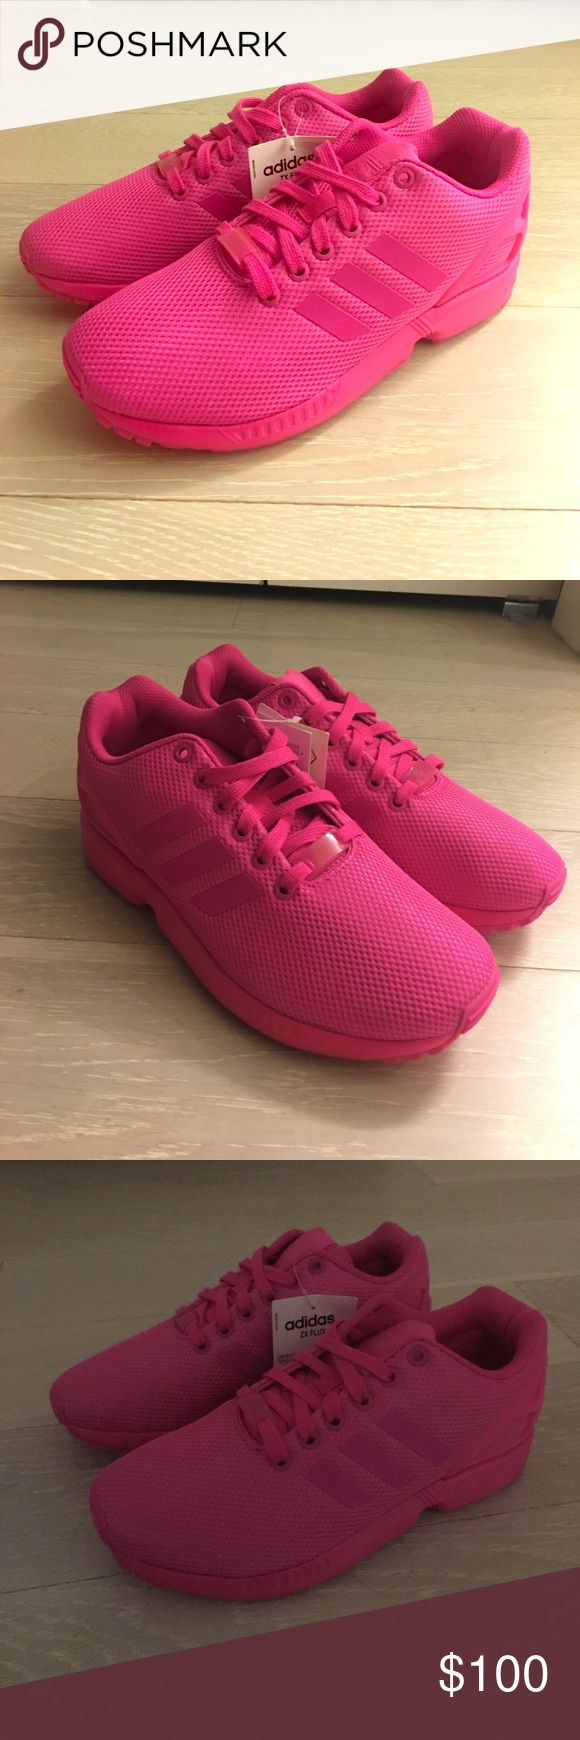 Adidas Flux Hot pink sneakers brand new with tags! Never worn! Just got them but they sent me the wrong size. Adidas Shoes Sneakers